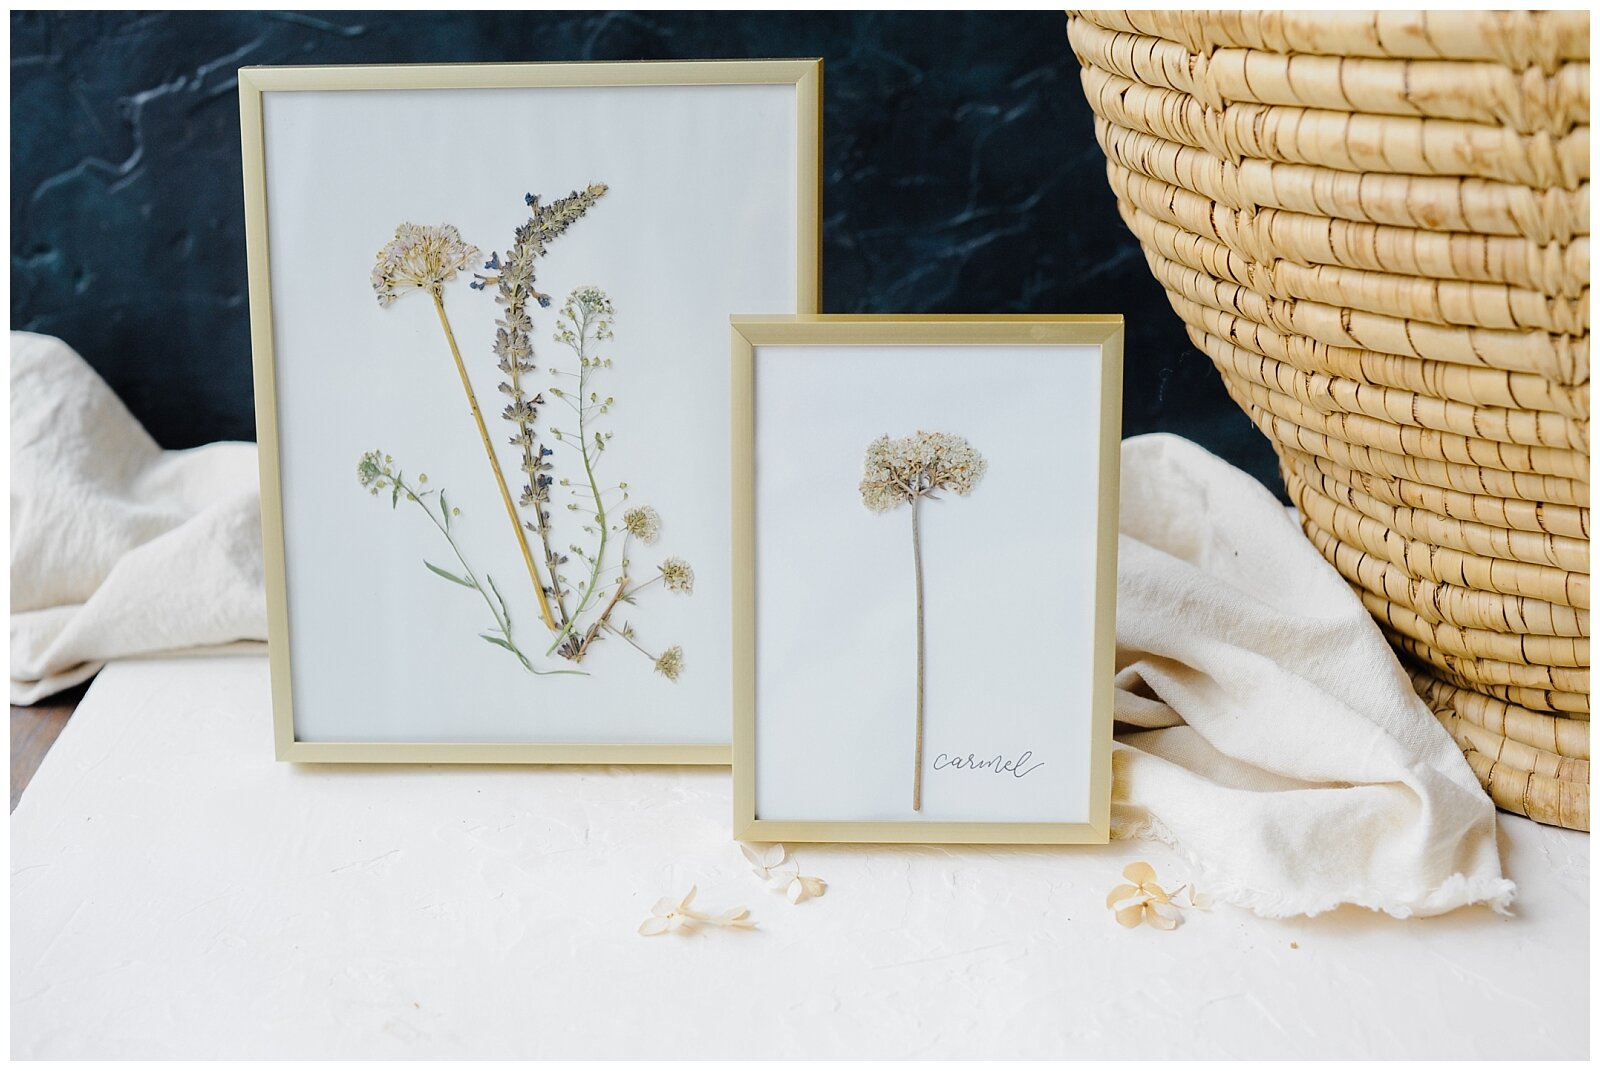 Holiday-Pop-up-phoenix-feathers-calligraphy.jpg